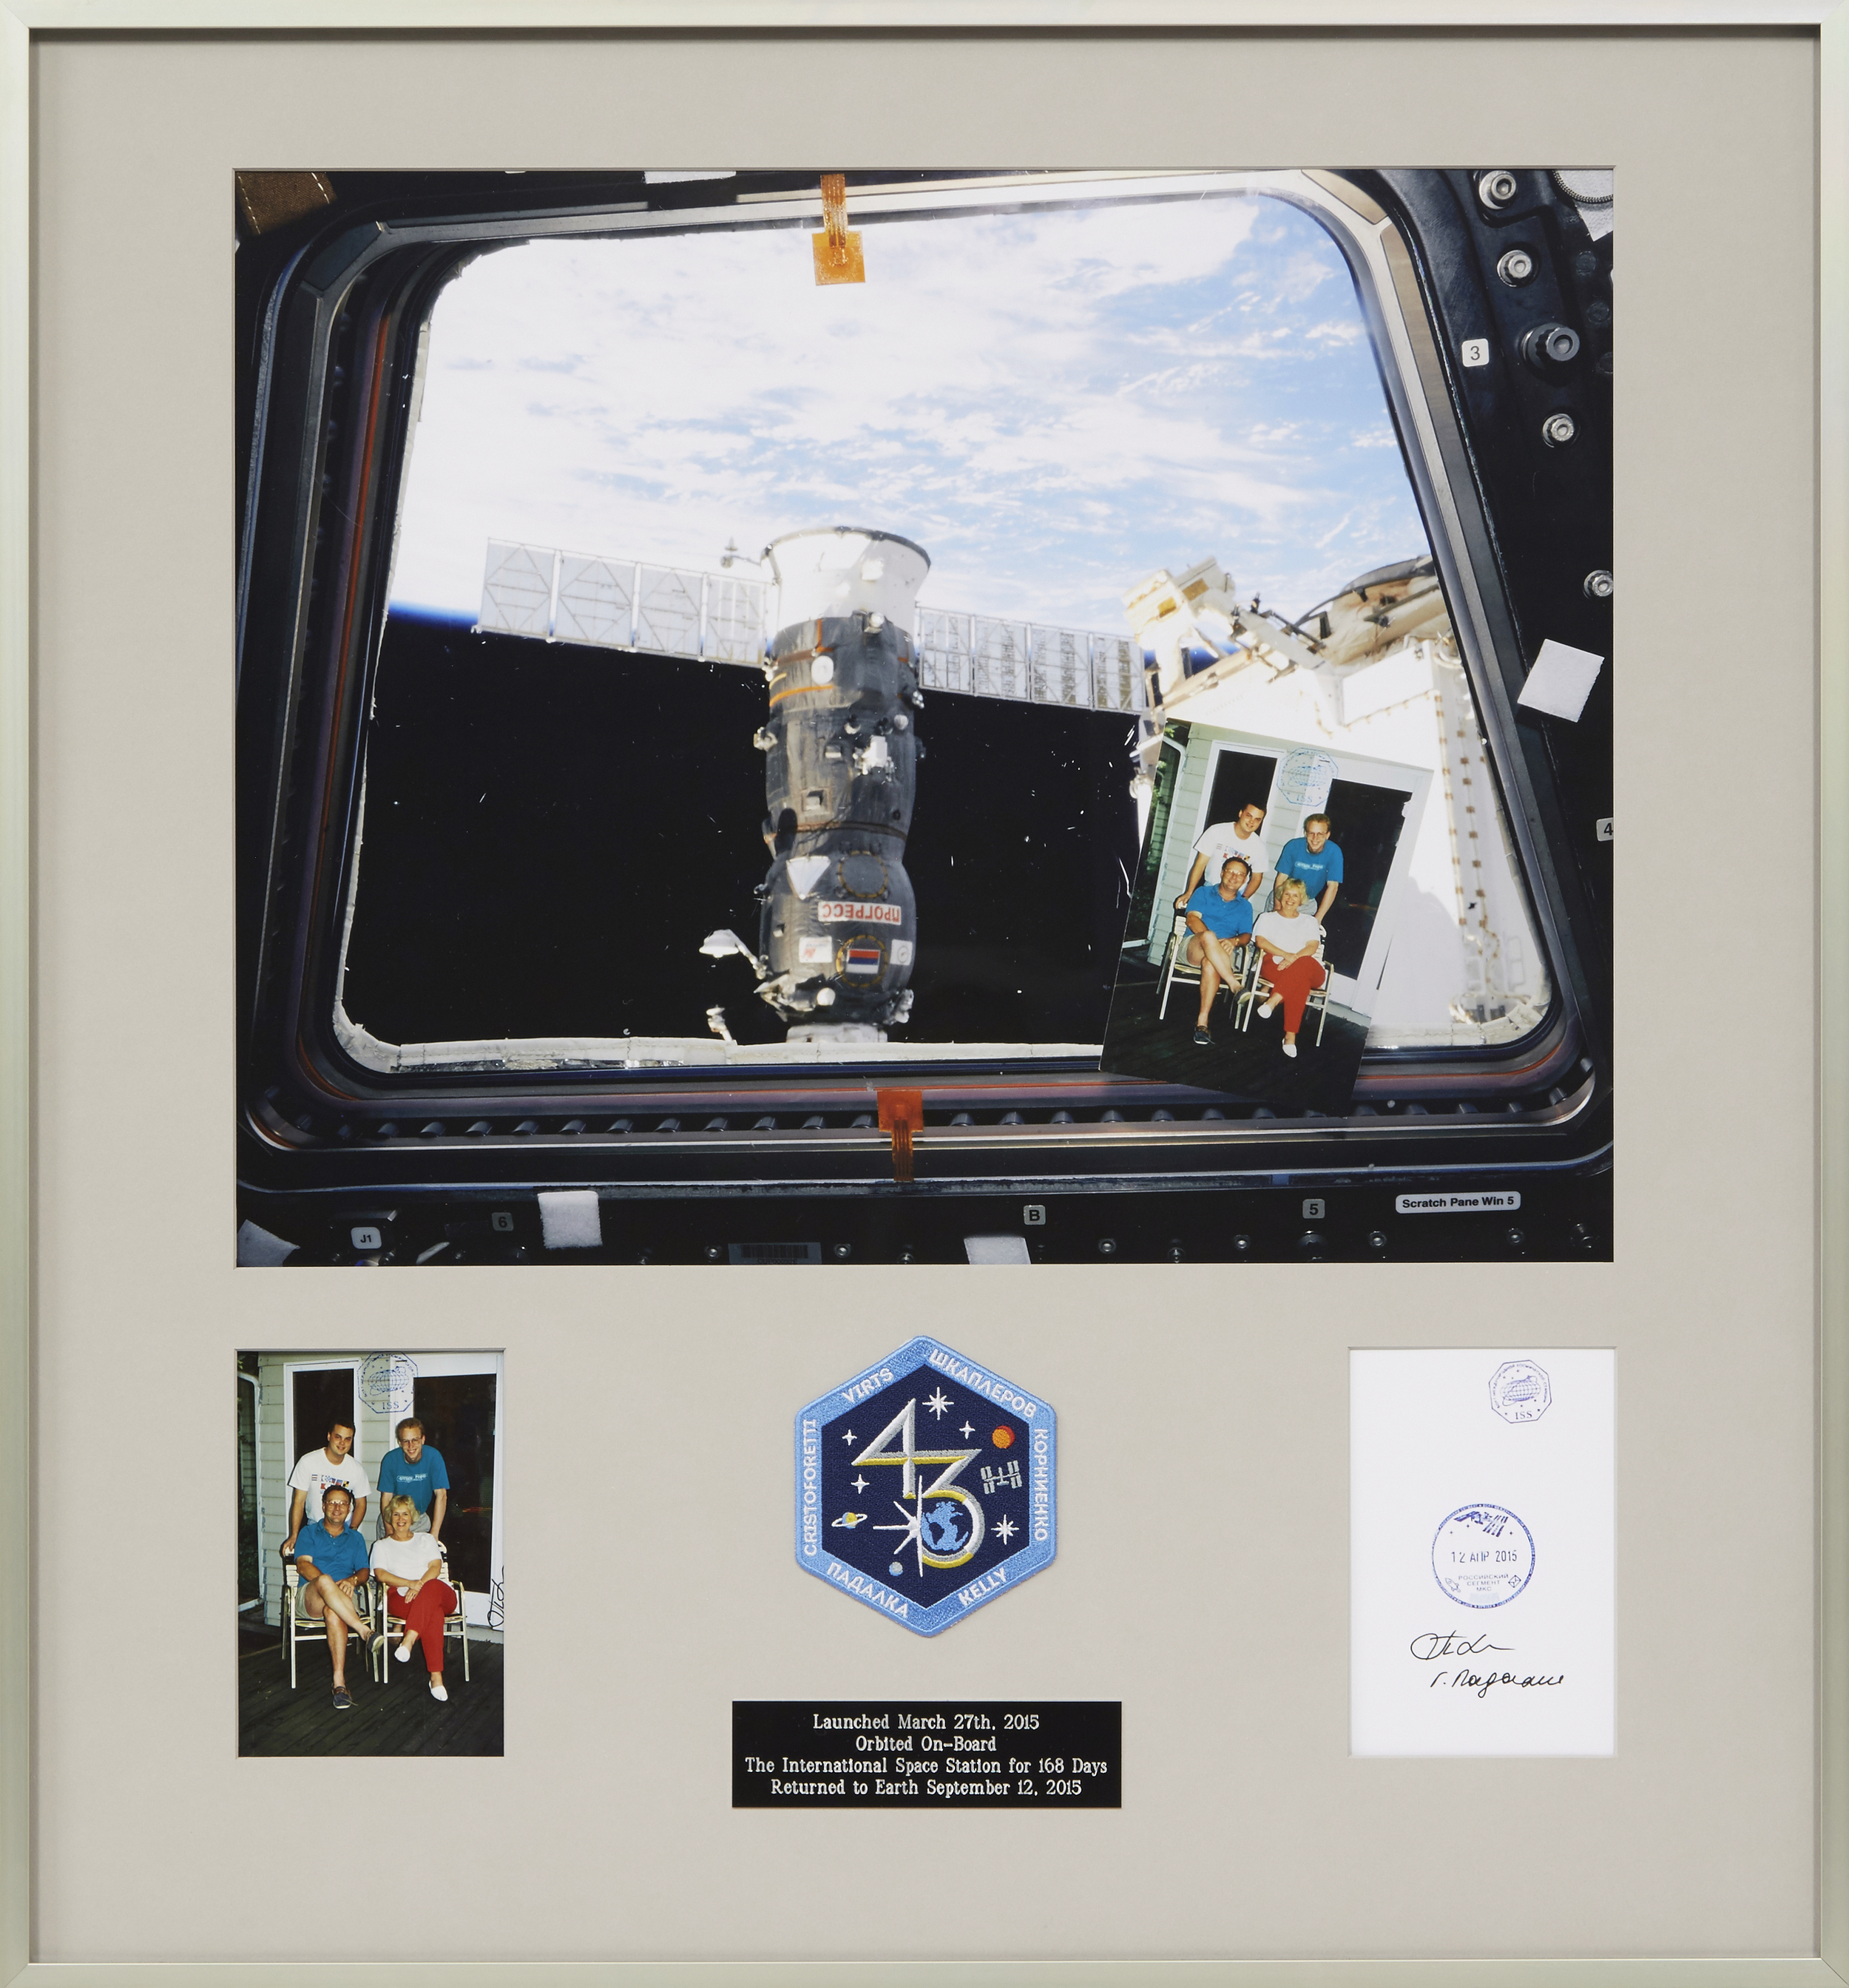 Finished project: Family photo displayed with the space memorabilia from the journey.